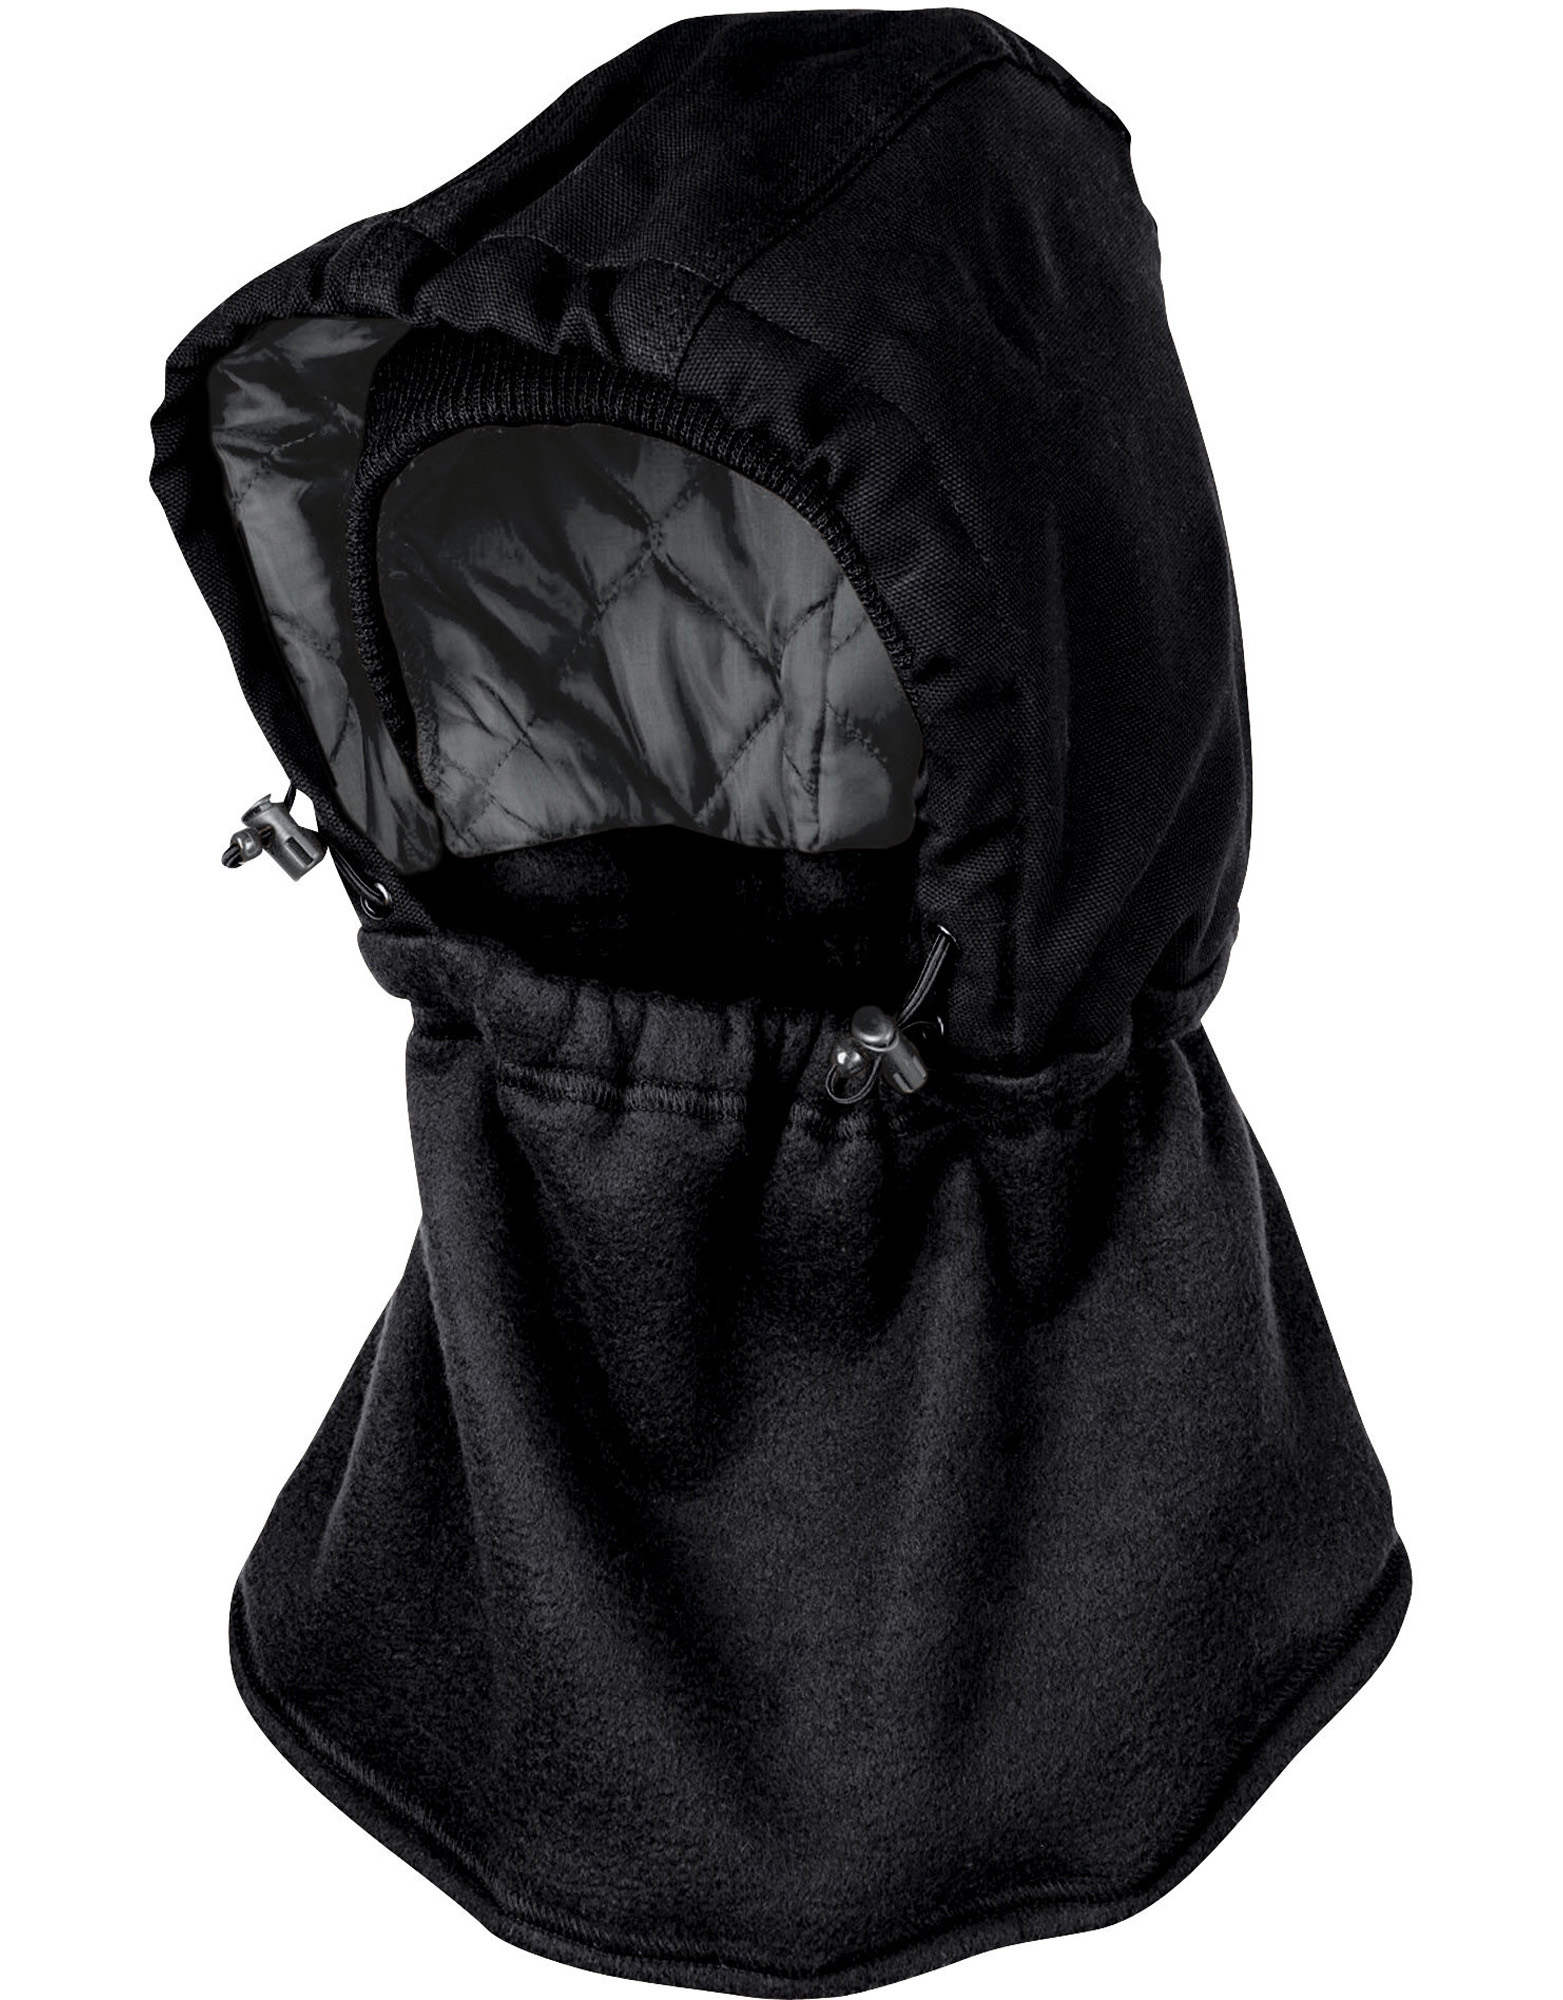 Hooded Neck Gaiter - Black (BK)